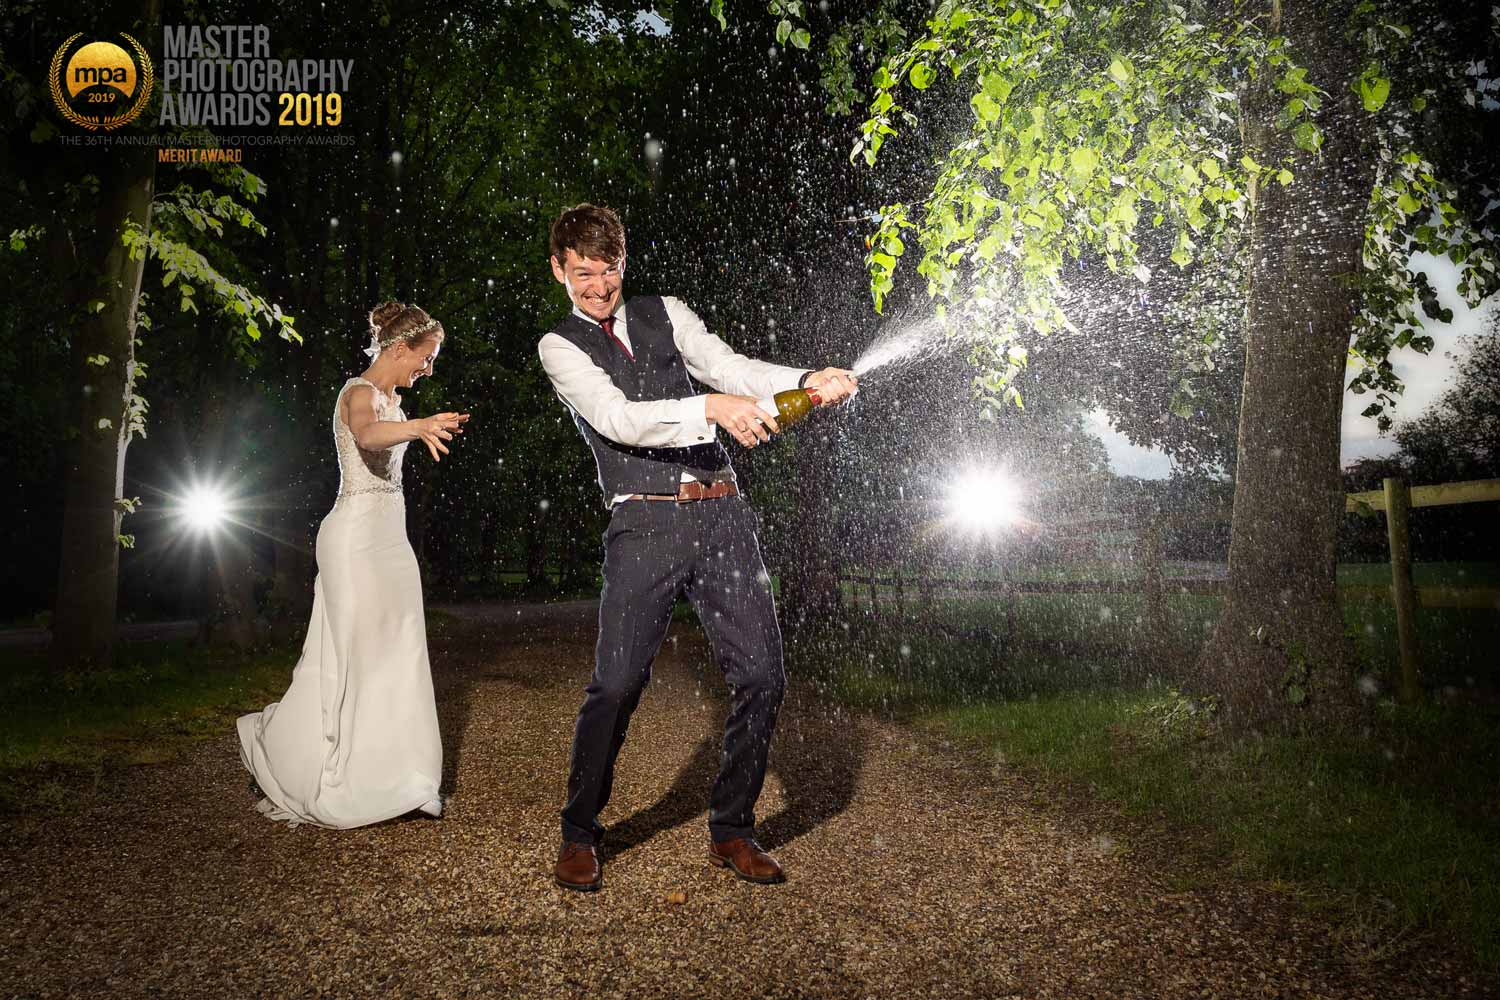 Newly married couple spraying champagne on their wedding day at Colville Hall in Essex